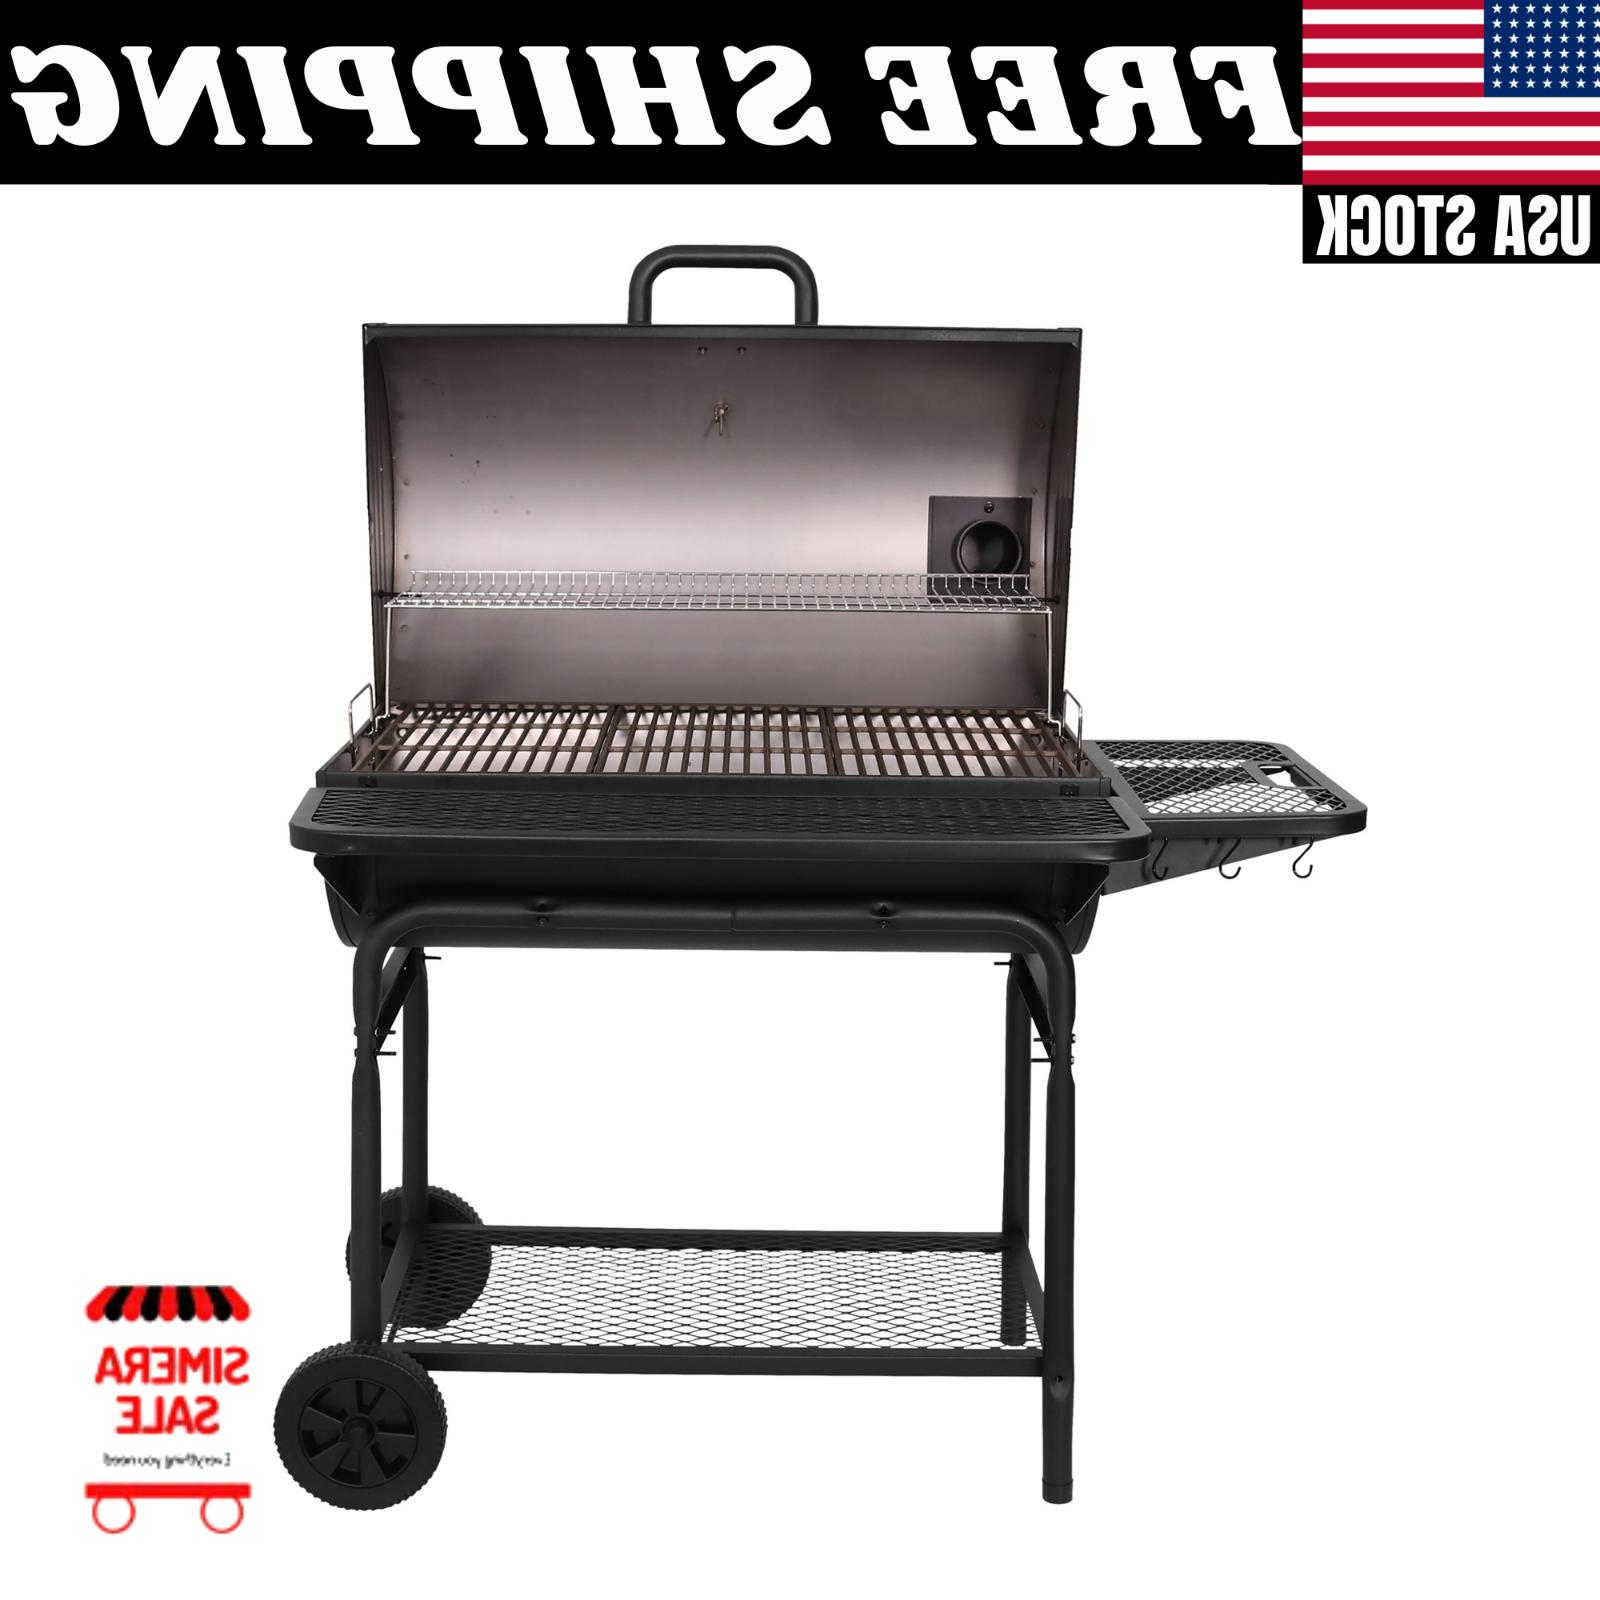 Large Grill Grills Charcoal Backyard